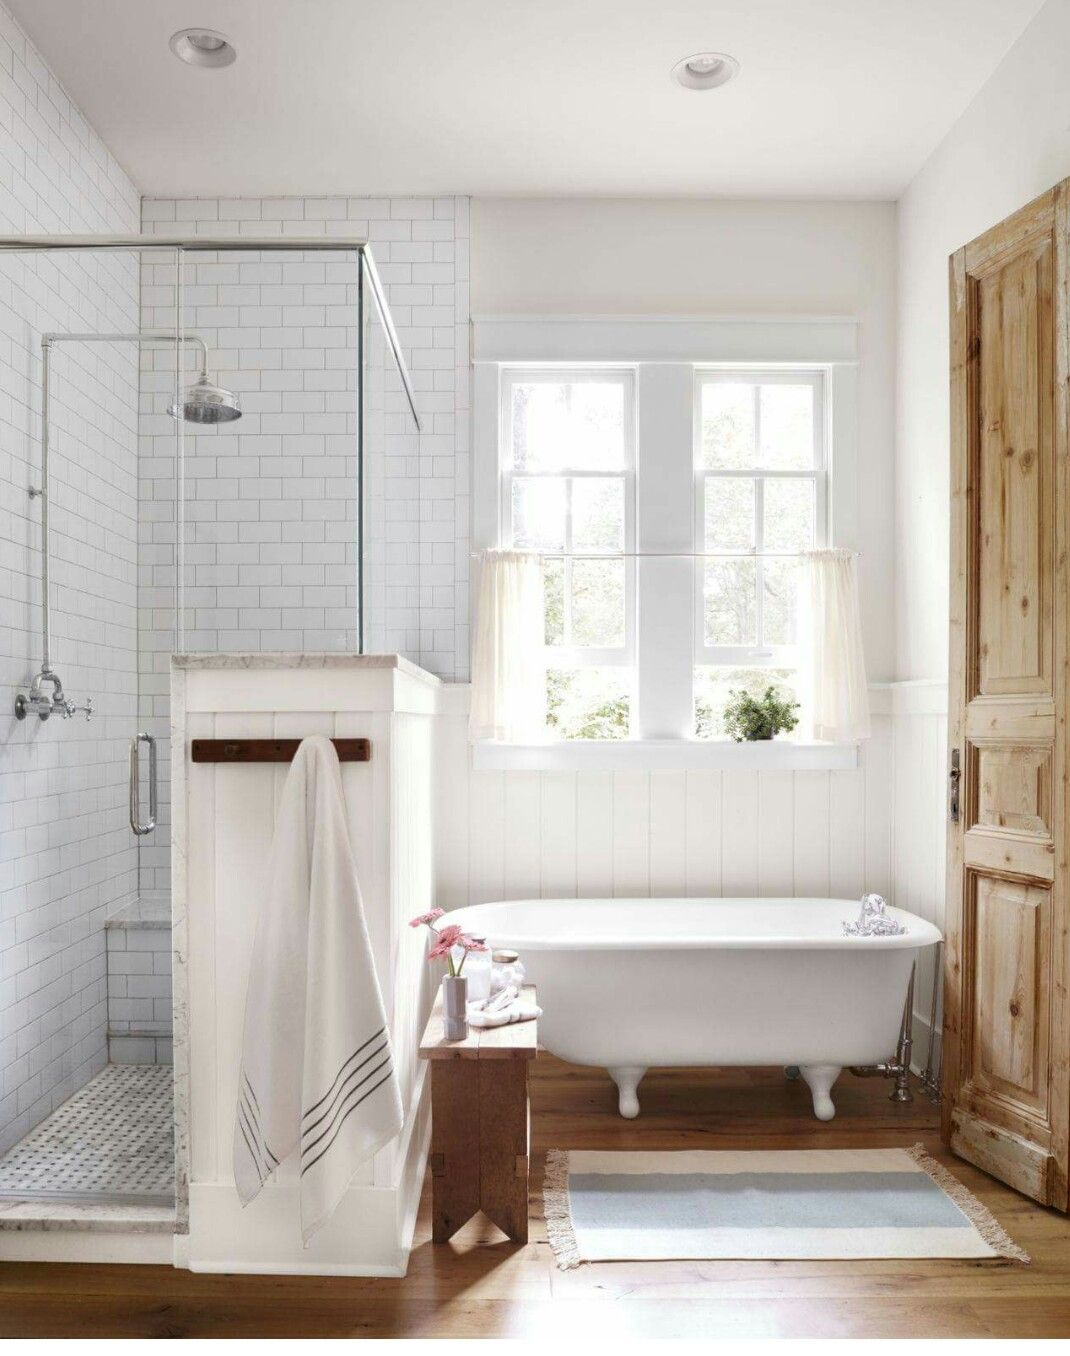 Cute old fashioned claw foot tub, wood floors and modern ...